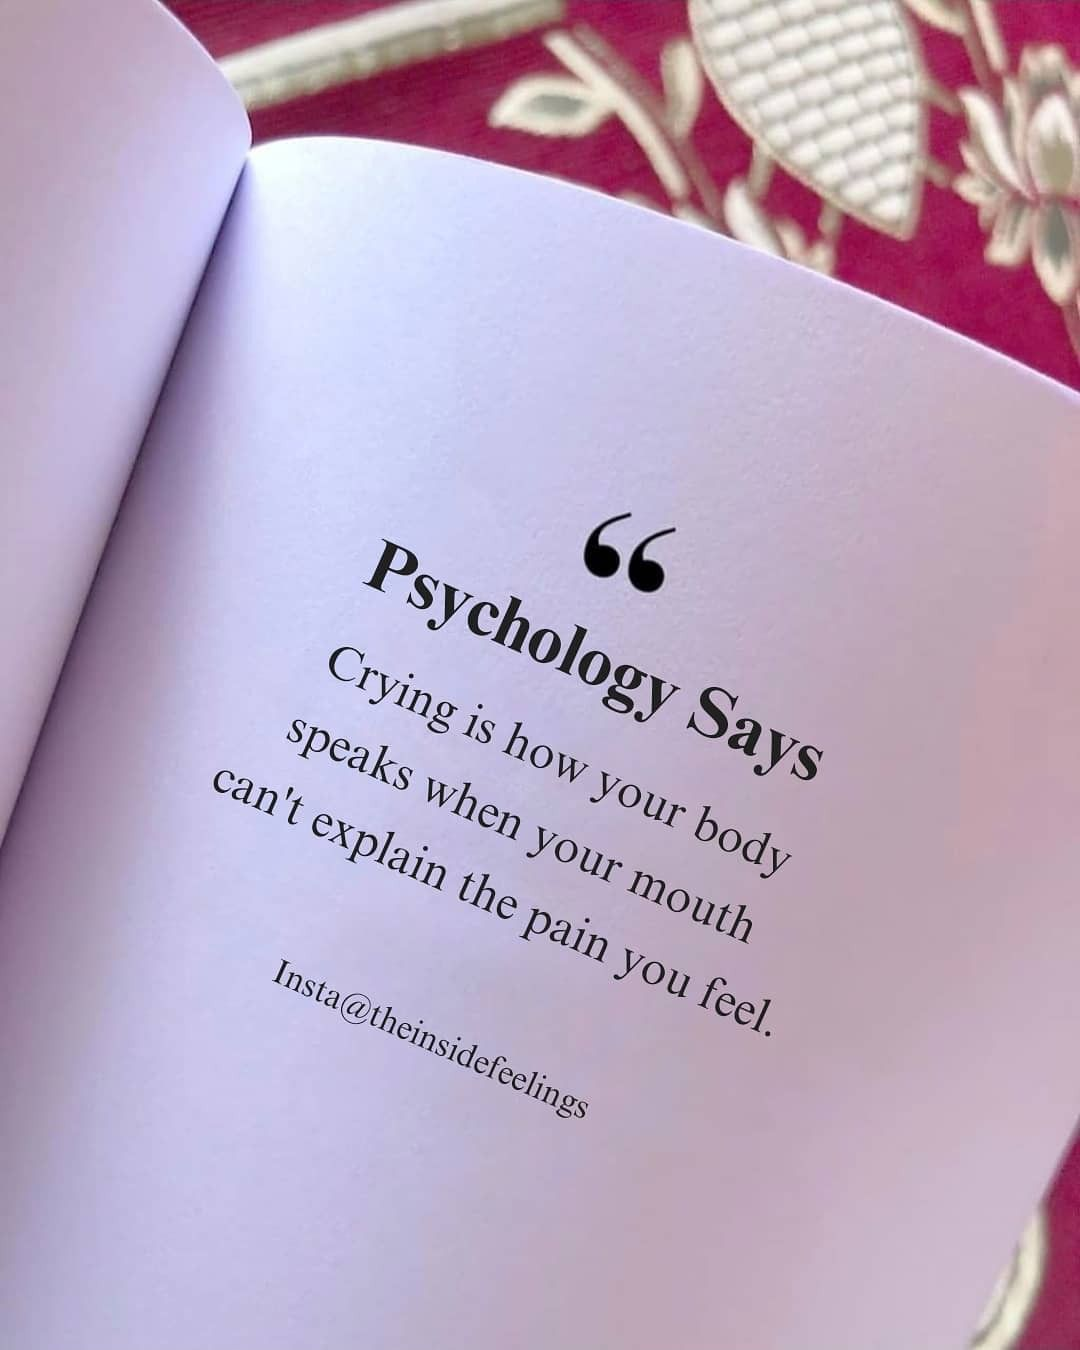 475 Personality Quotes From Psychology To Go Personality Quotes Psychology Fun Facts Psychology